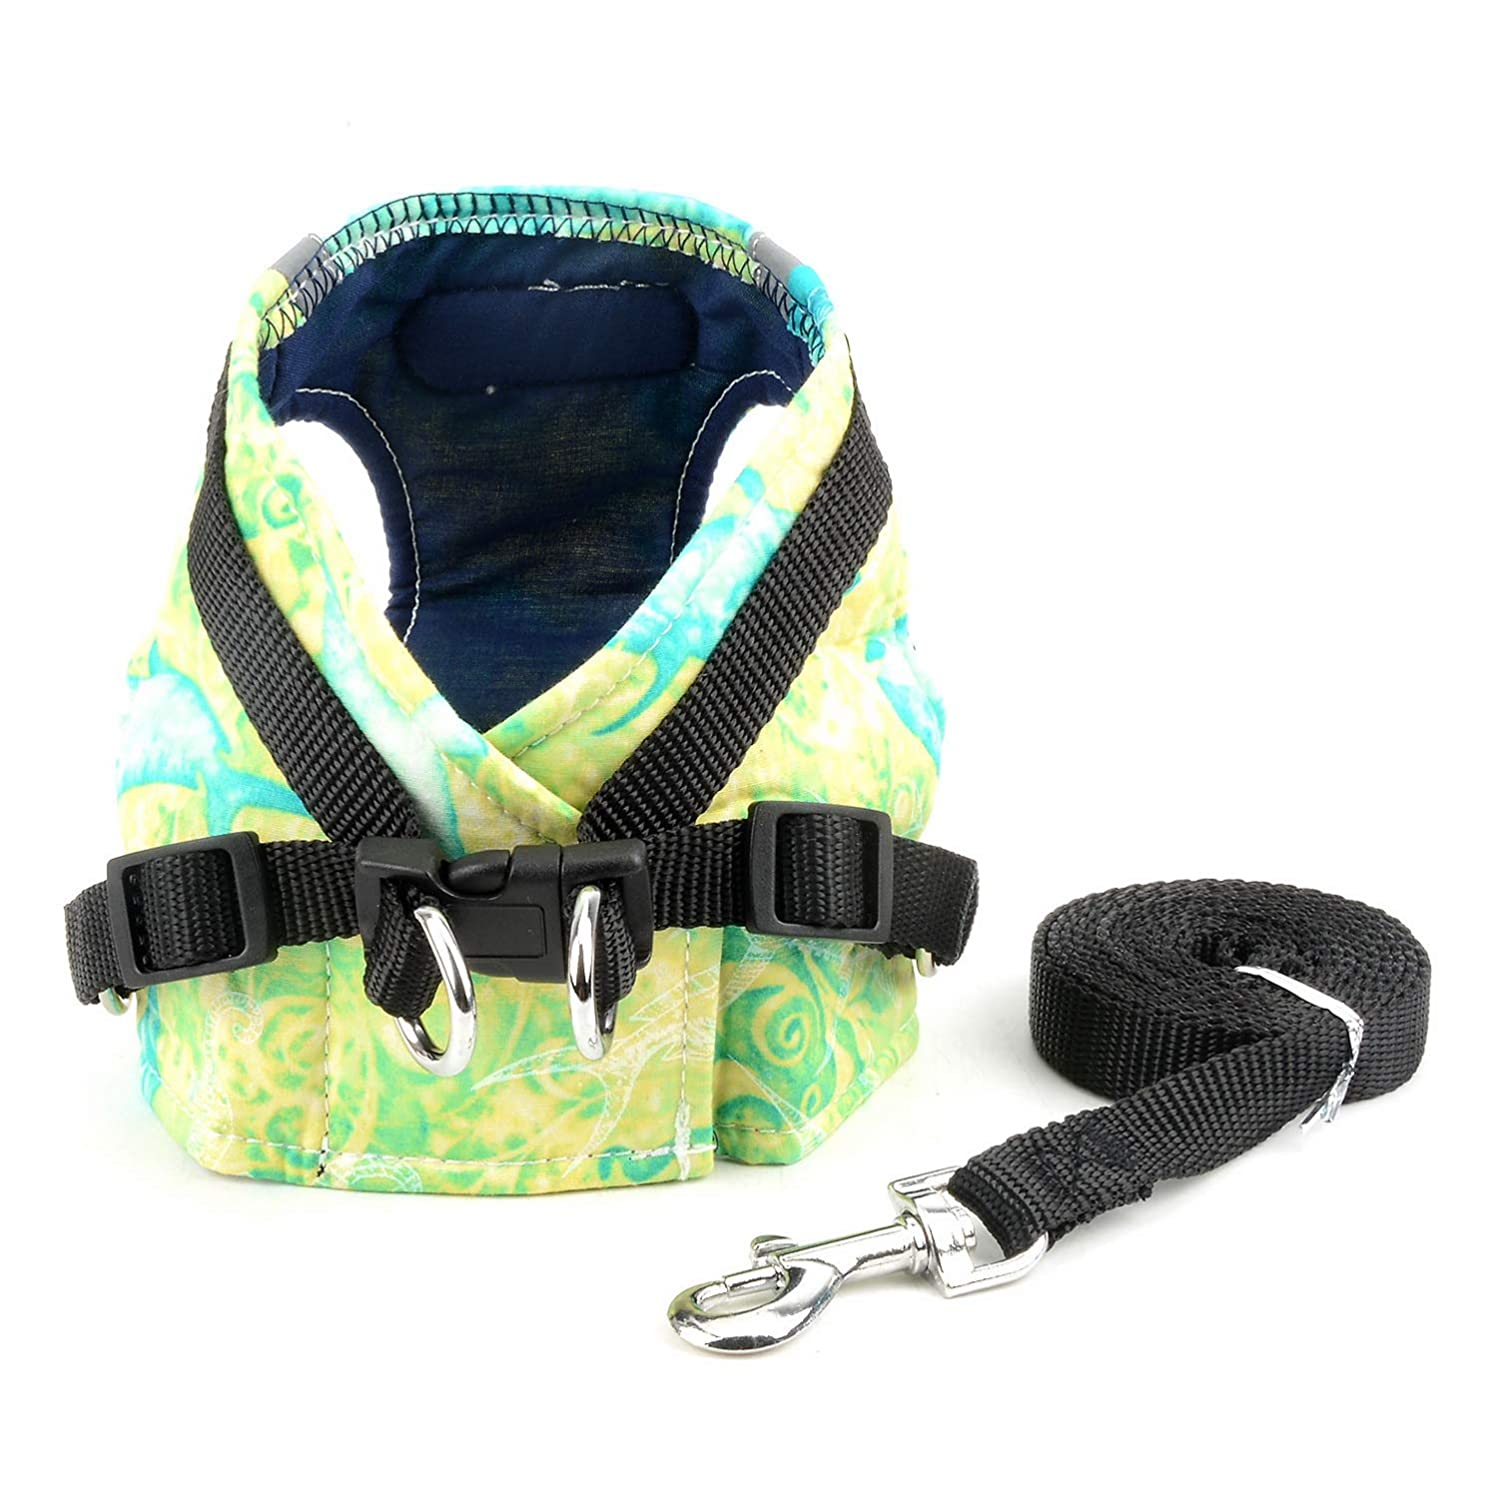 SELMAI Dog Harness for Small Dogs Reflective Print Soft Breathable No Pull Adjustable Leash Collar Set for Cat Escape Proof Easy on Padded Step in Vest Harness for Walking Puppy Playing Green S